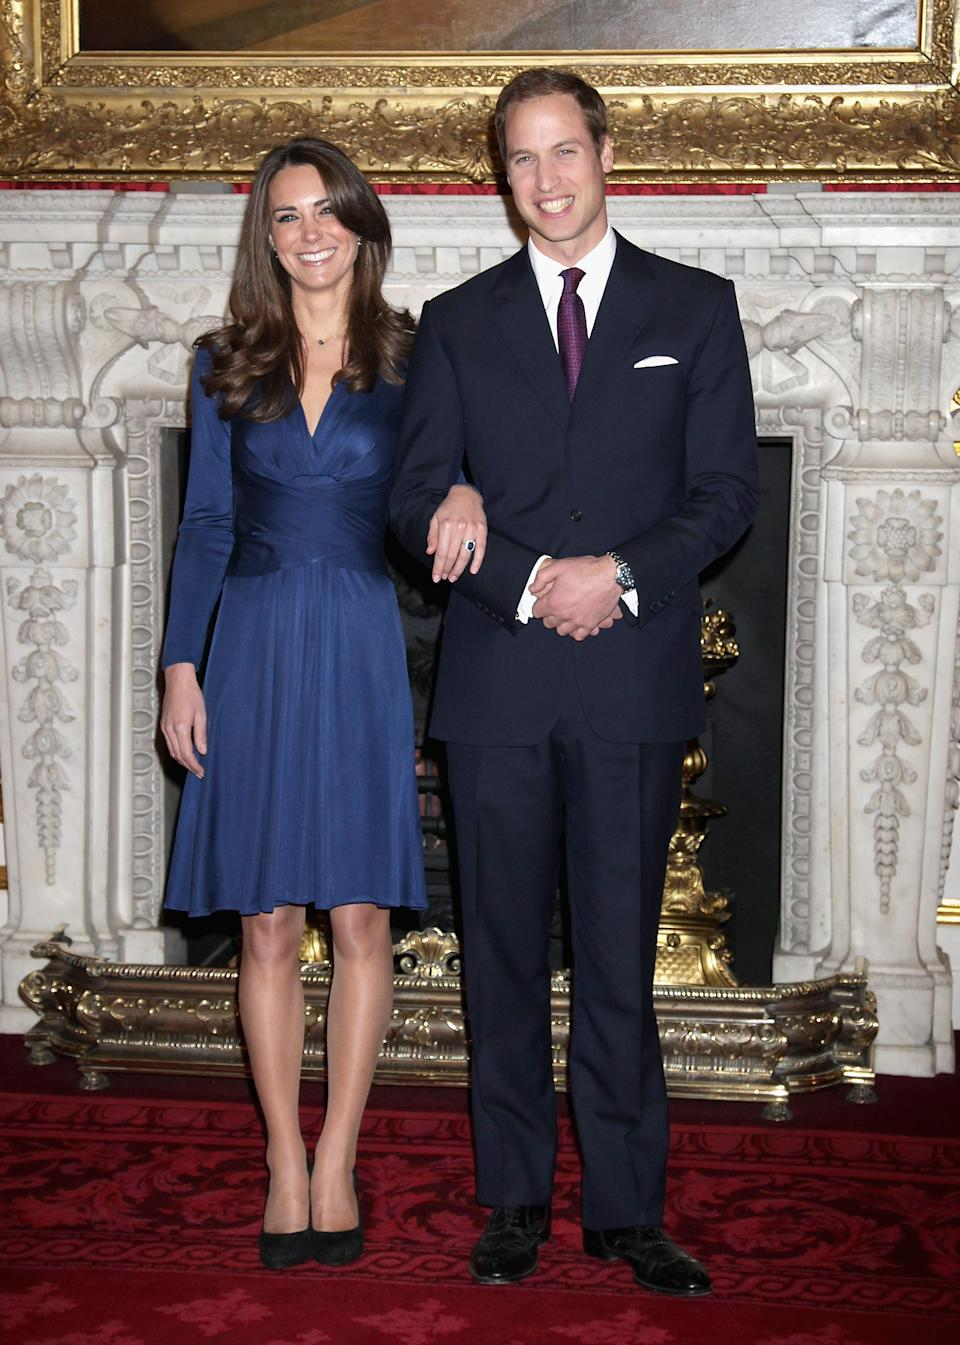 Before William proposed to Kate in 2010, Harry offered his brother the chance to use the ring and honour their mother. Photo: Getty